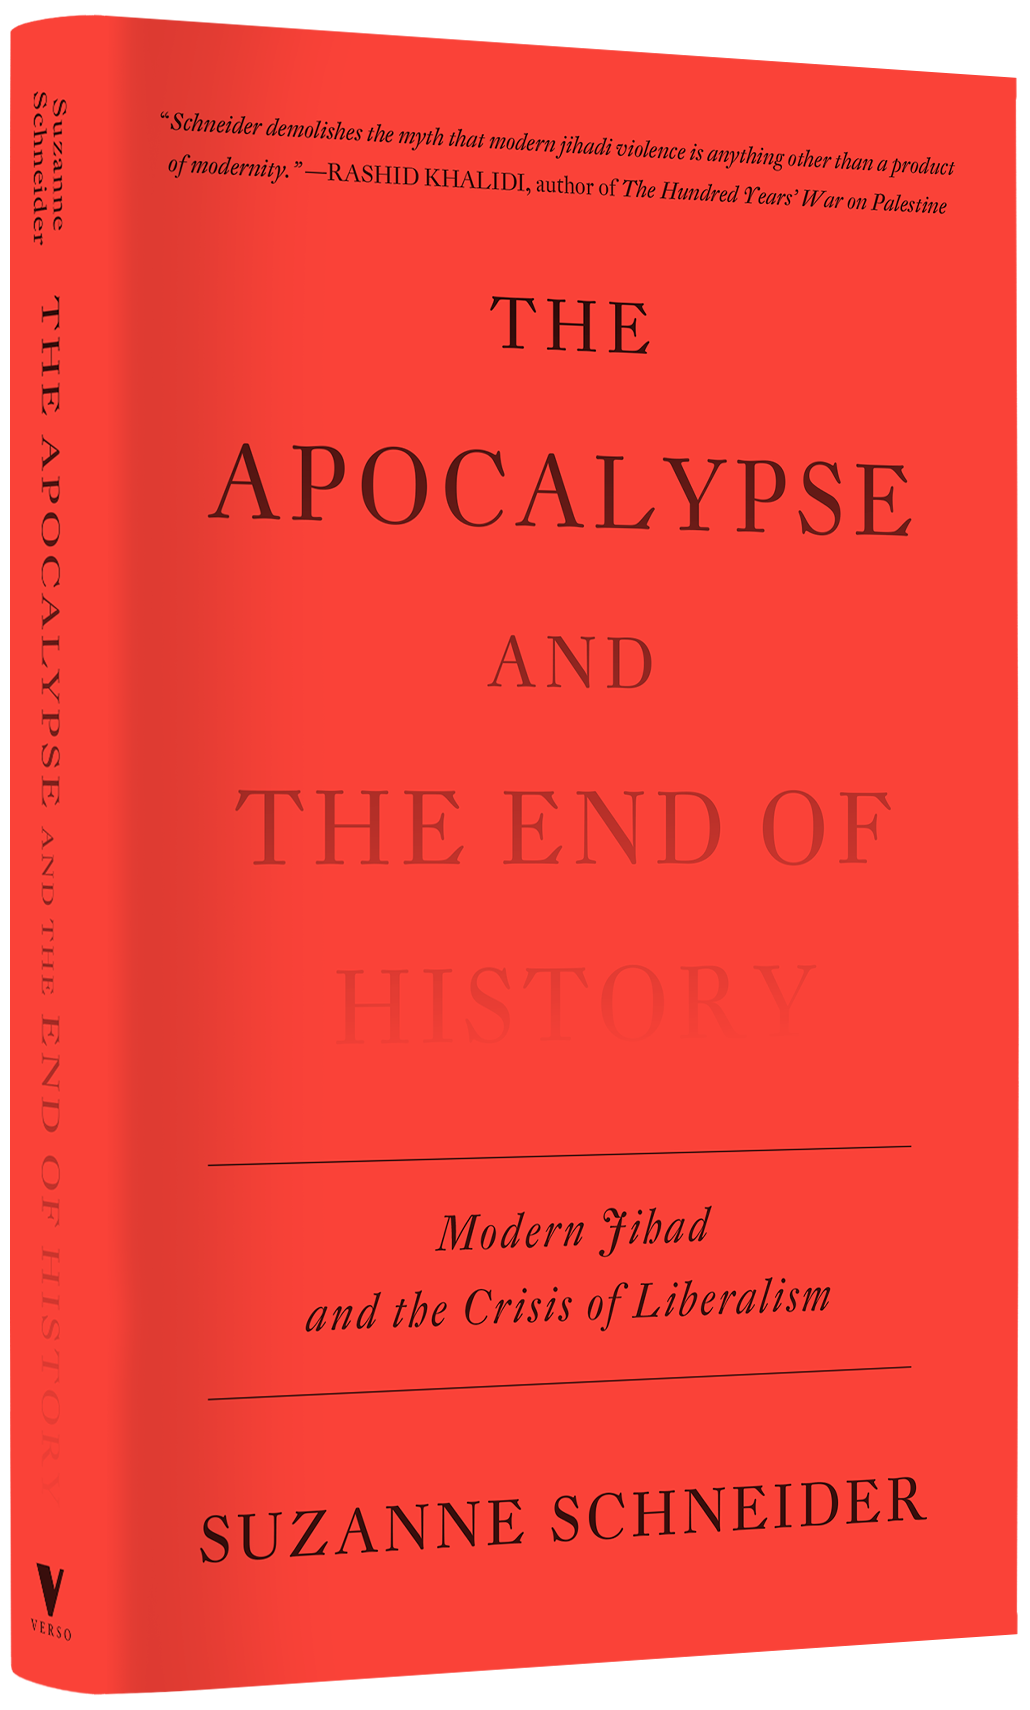 The Apocalypse and the End of History